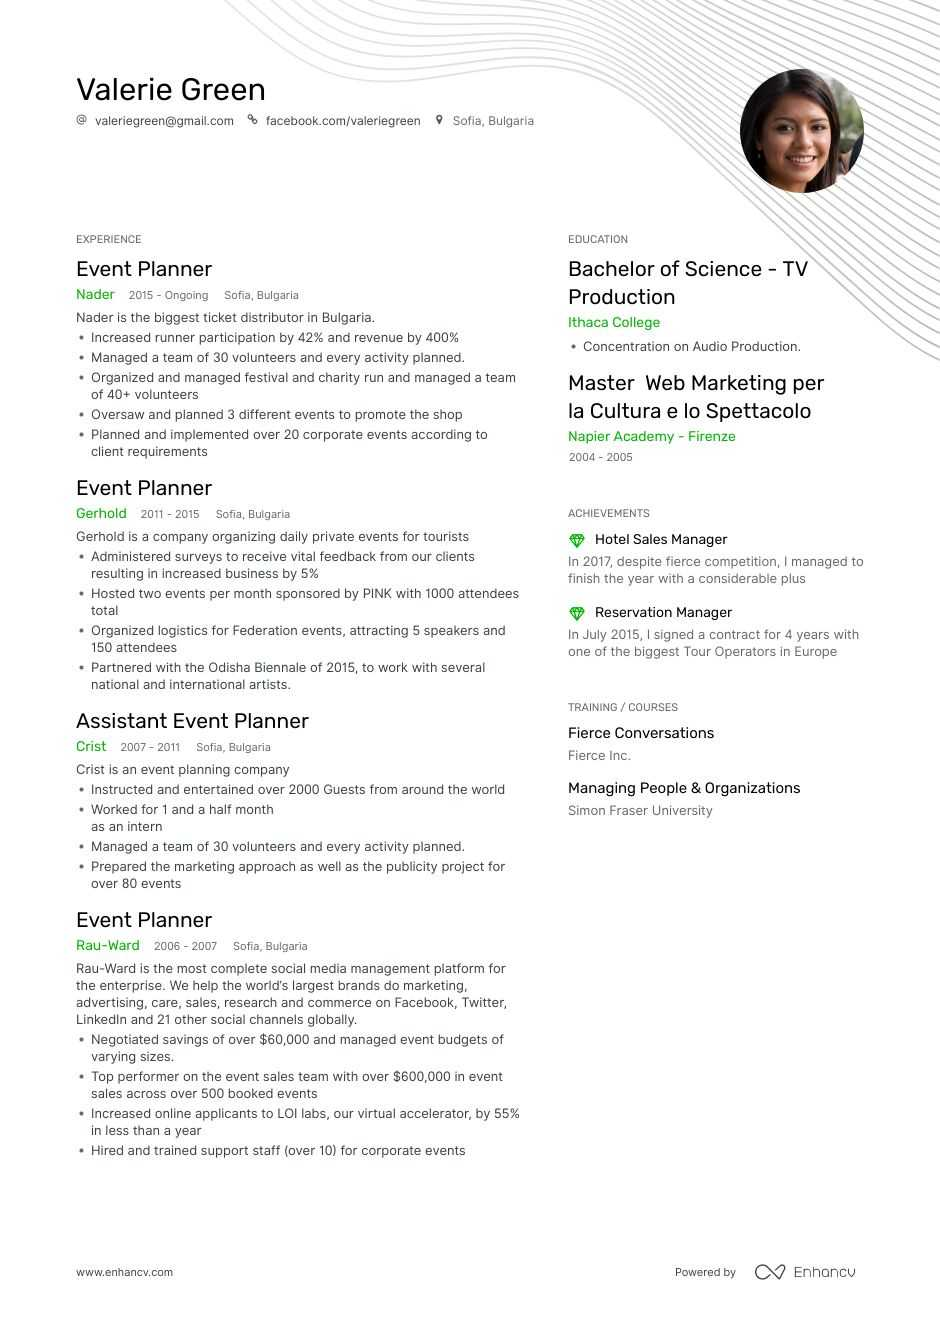 top event planner resume examples samples for enhancv party sample adobe stock templates Resume Party Planner Resume Sample